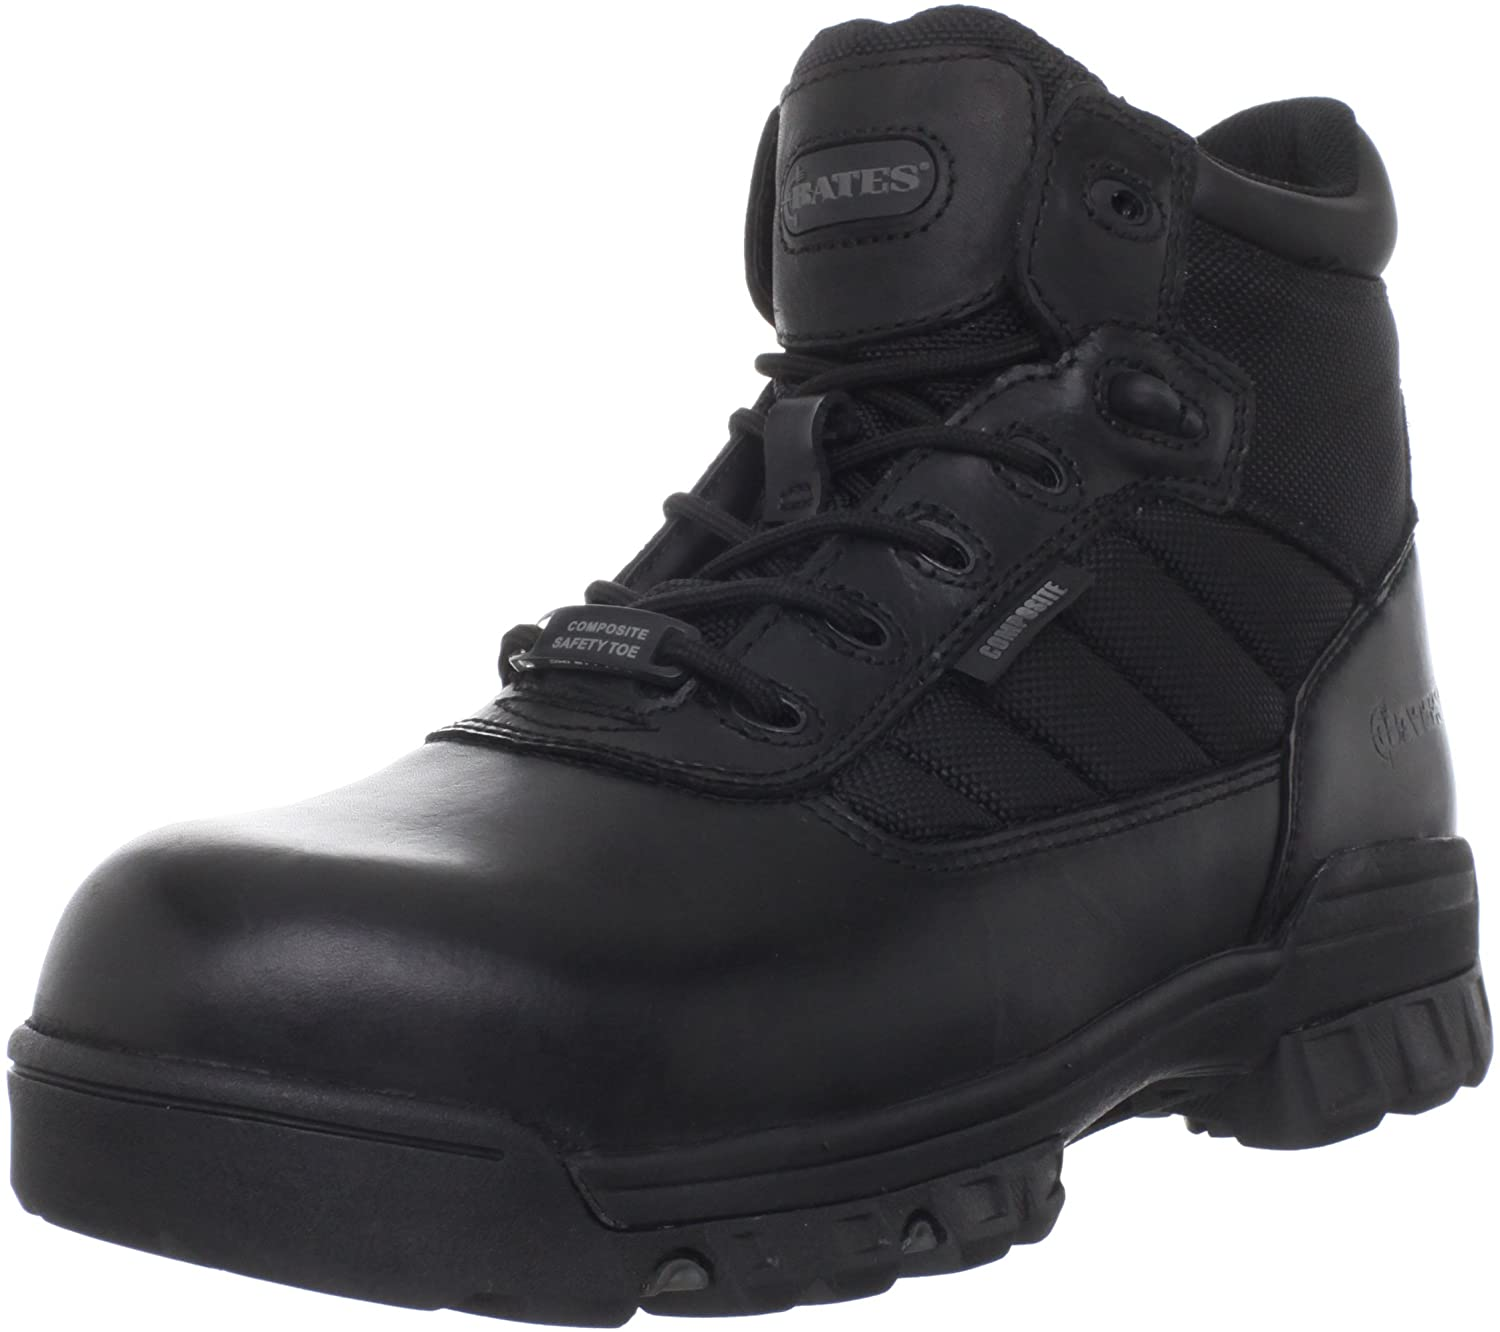 Bates Men's Ultralite Tactical Composite Toe Paramedic Boots for those who love comfort and stability.